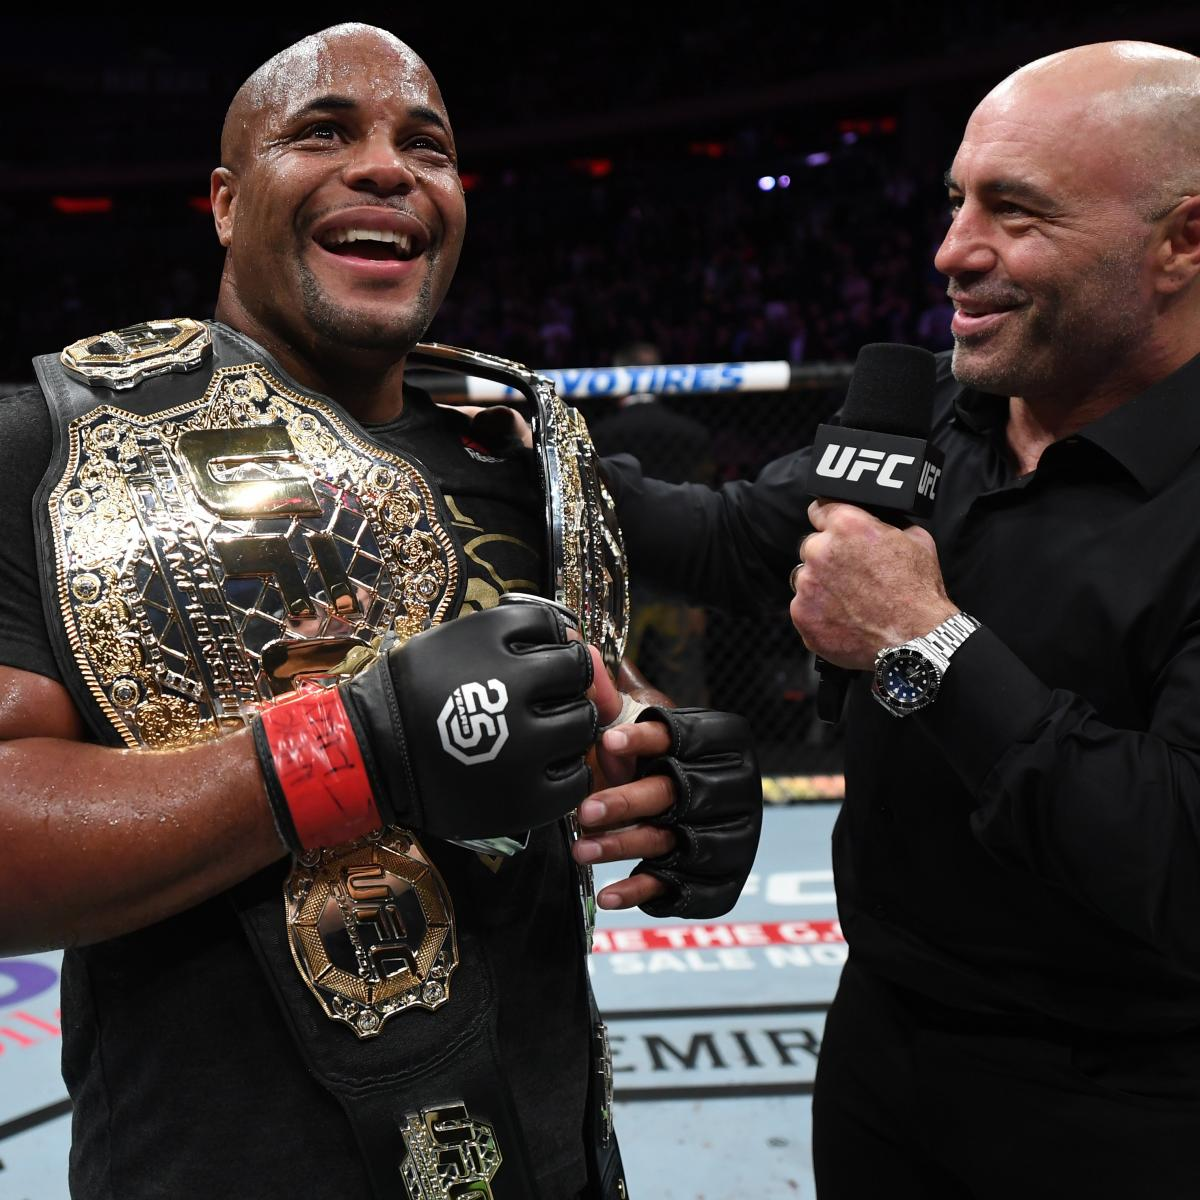 Daniel Cormier Says He Might Retire After UFC 241 Fight vs. Stipe MiocicRelated